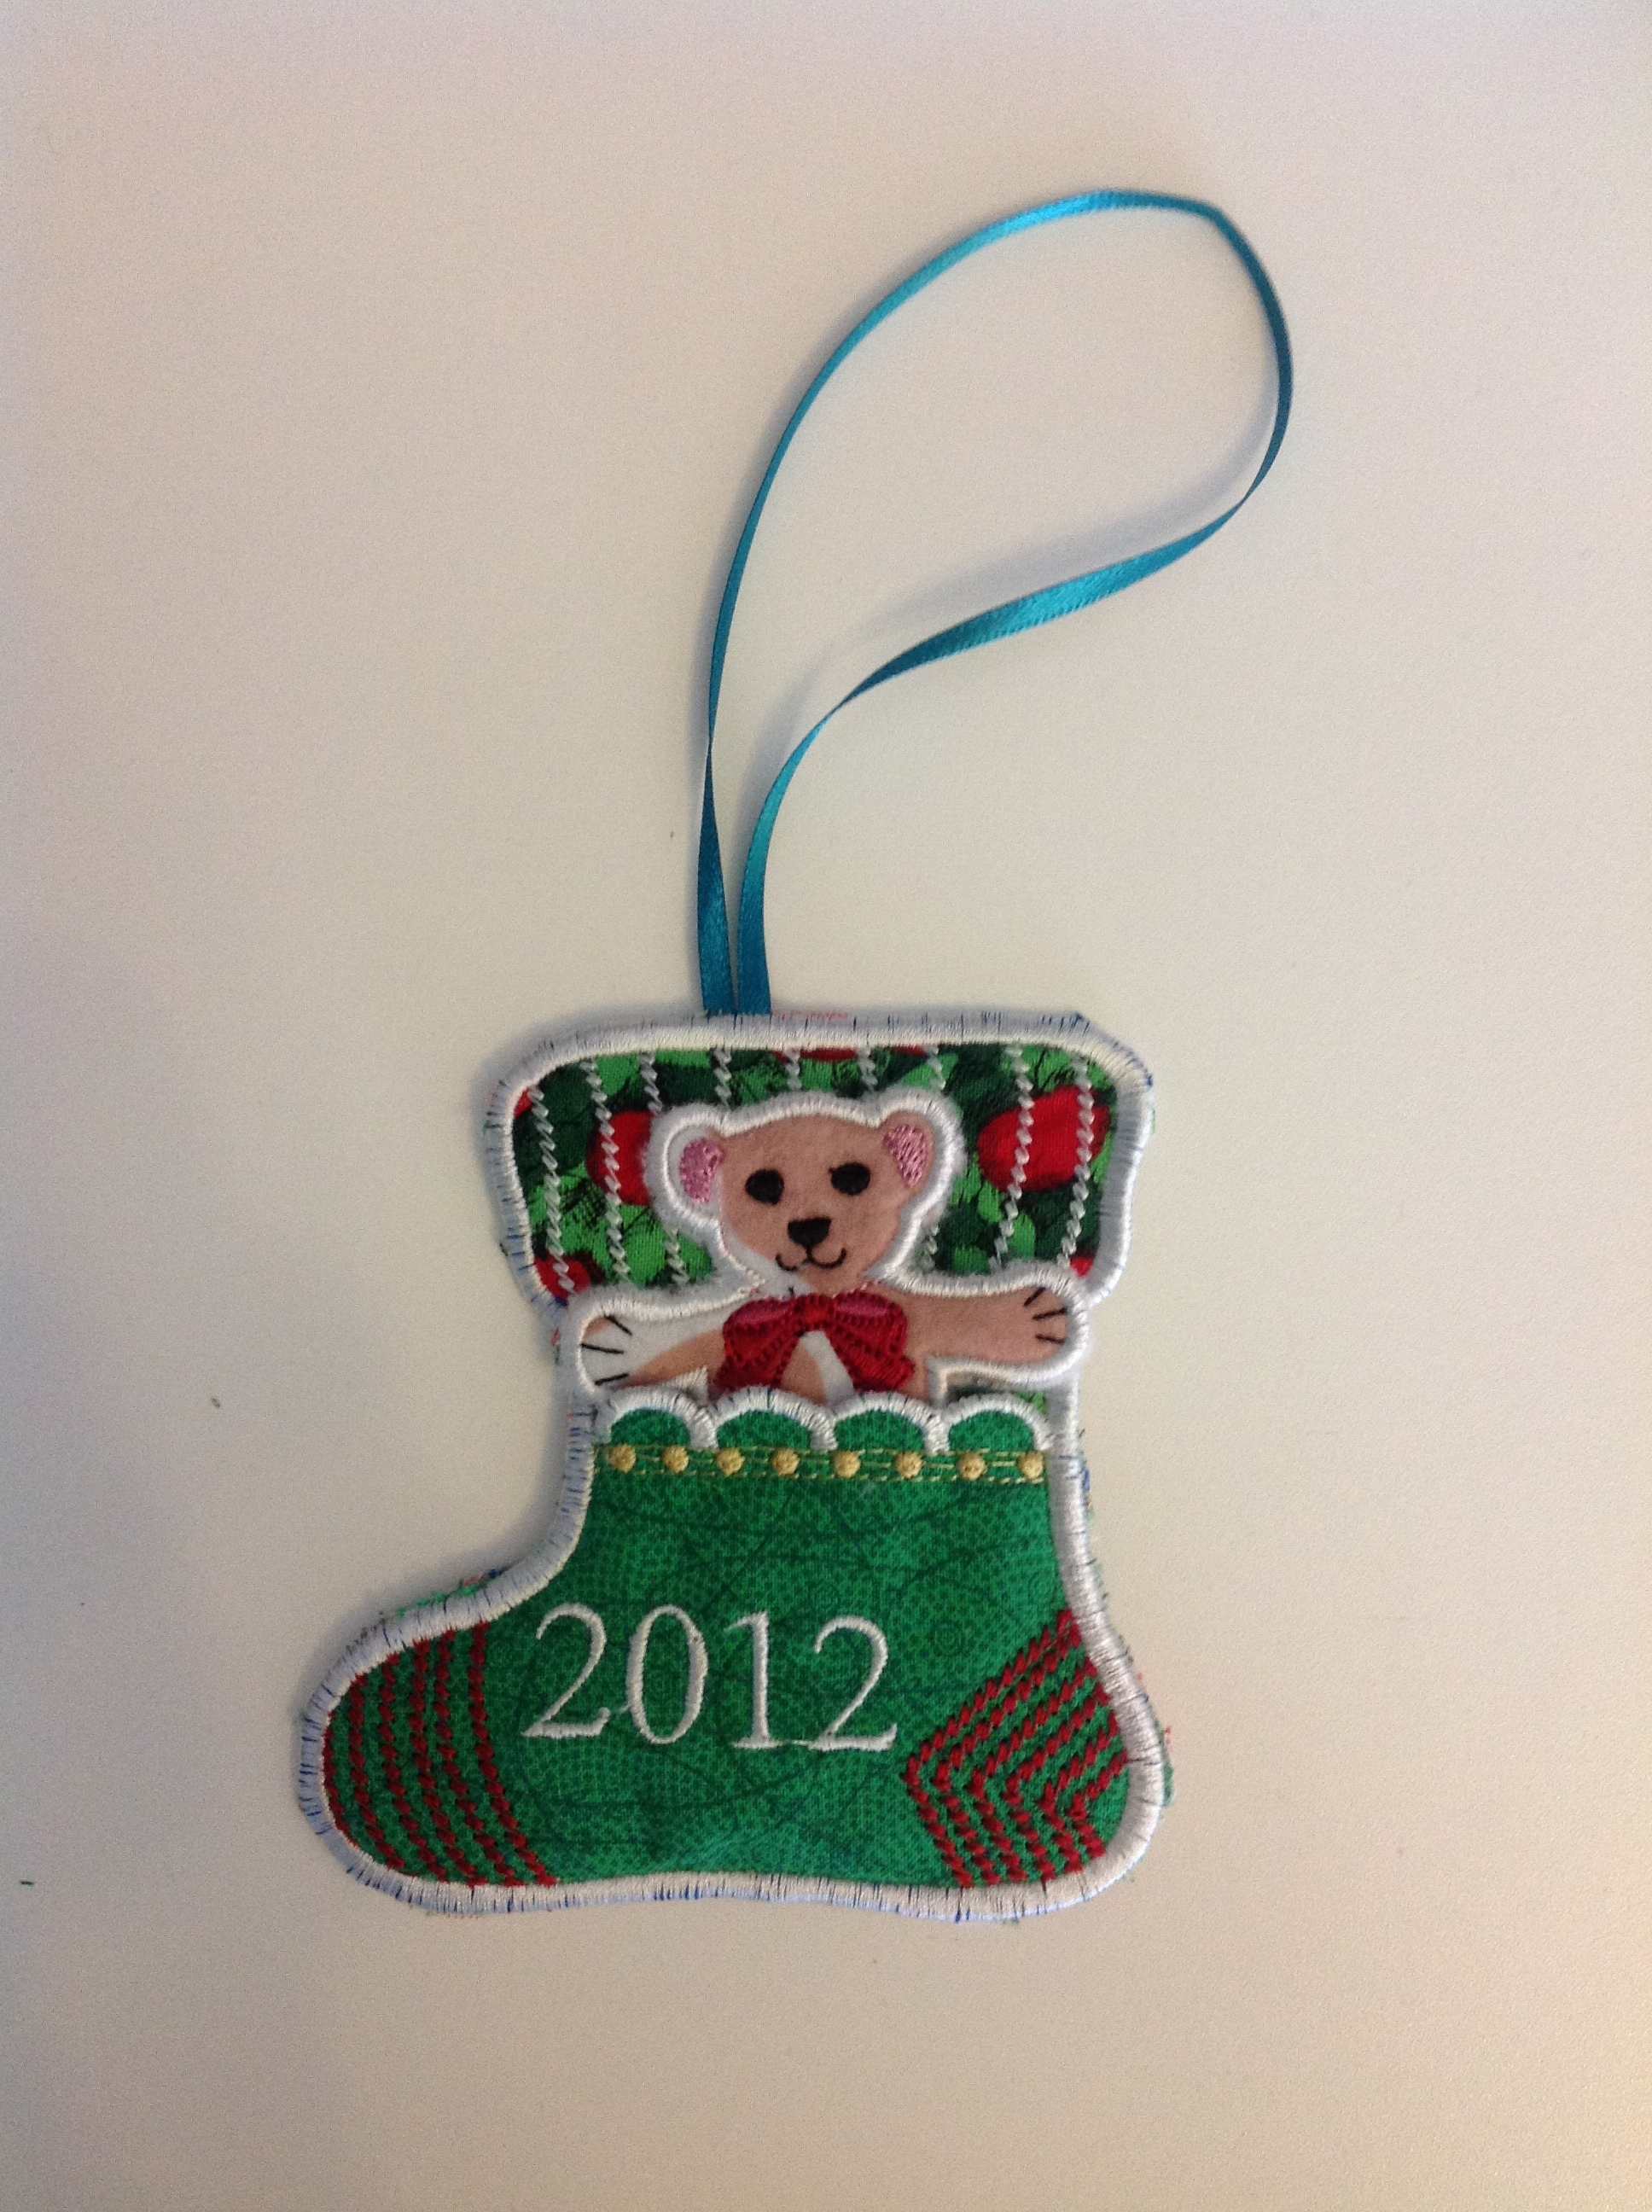 Karole Kurnow 2012 Christmas Stocking.JPG